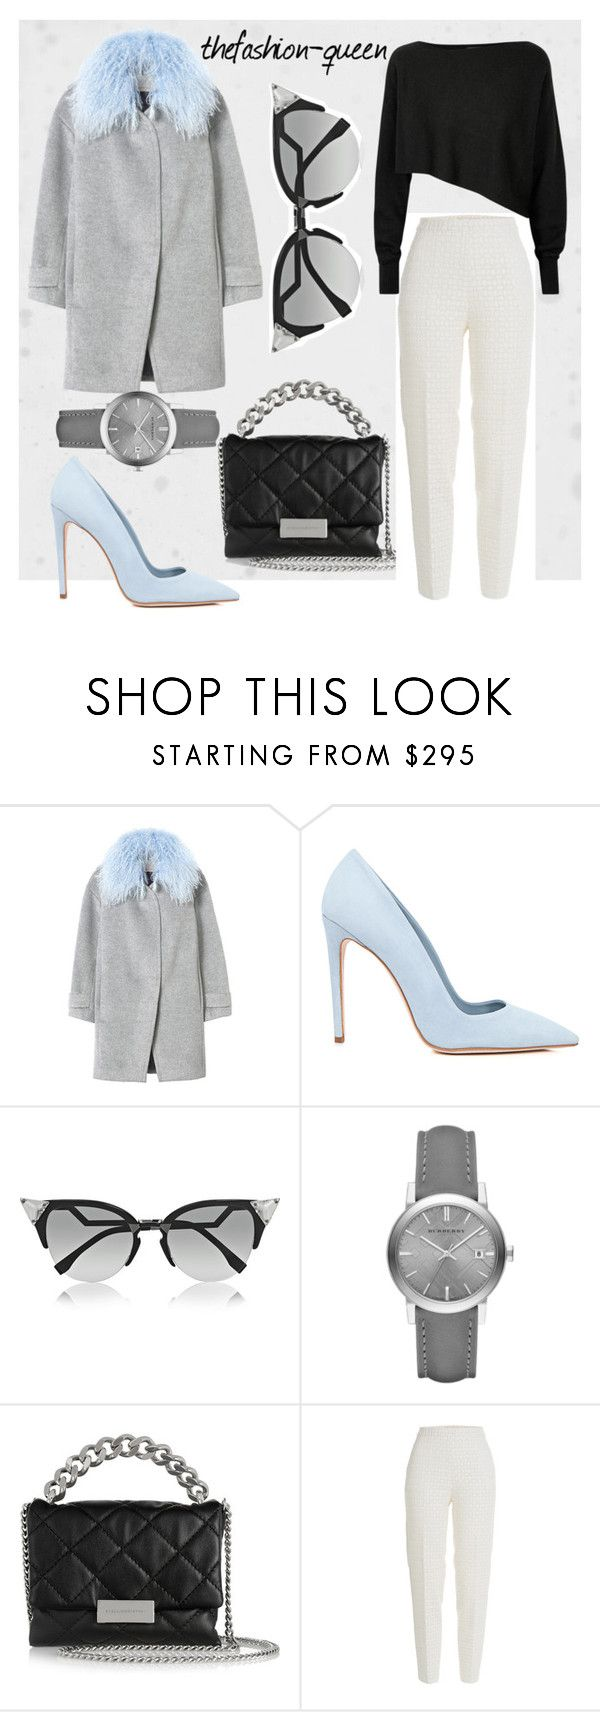 """Untitled #32"" by thefashion-queen ❤ liked on Polyvore featuring Rebecca Taylor, Dee Keller, Fendi, Burberry, STELLA McCARTNEY, Giambattista Valli and Crea Concept"